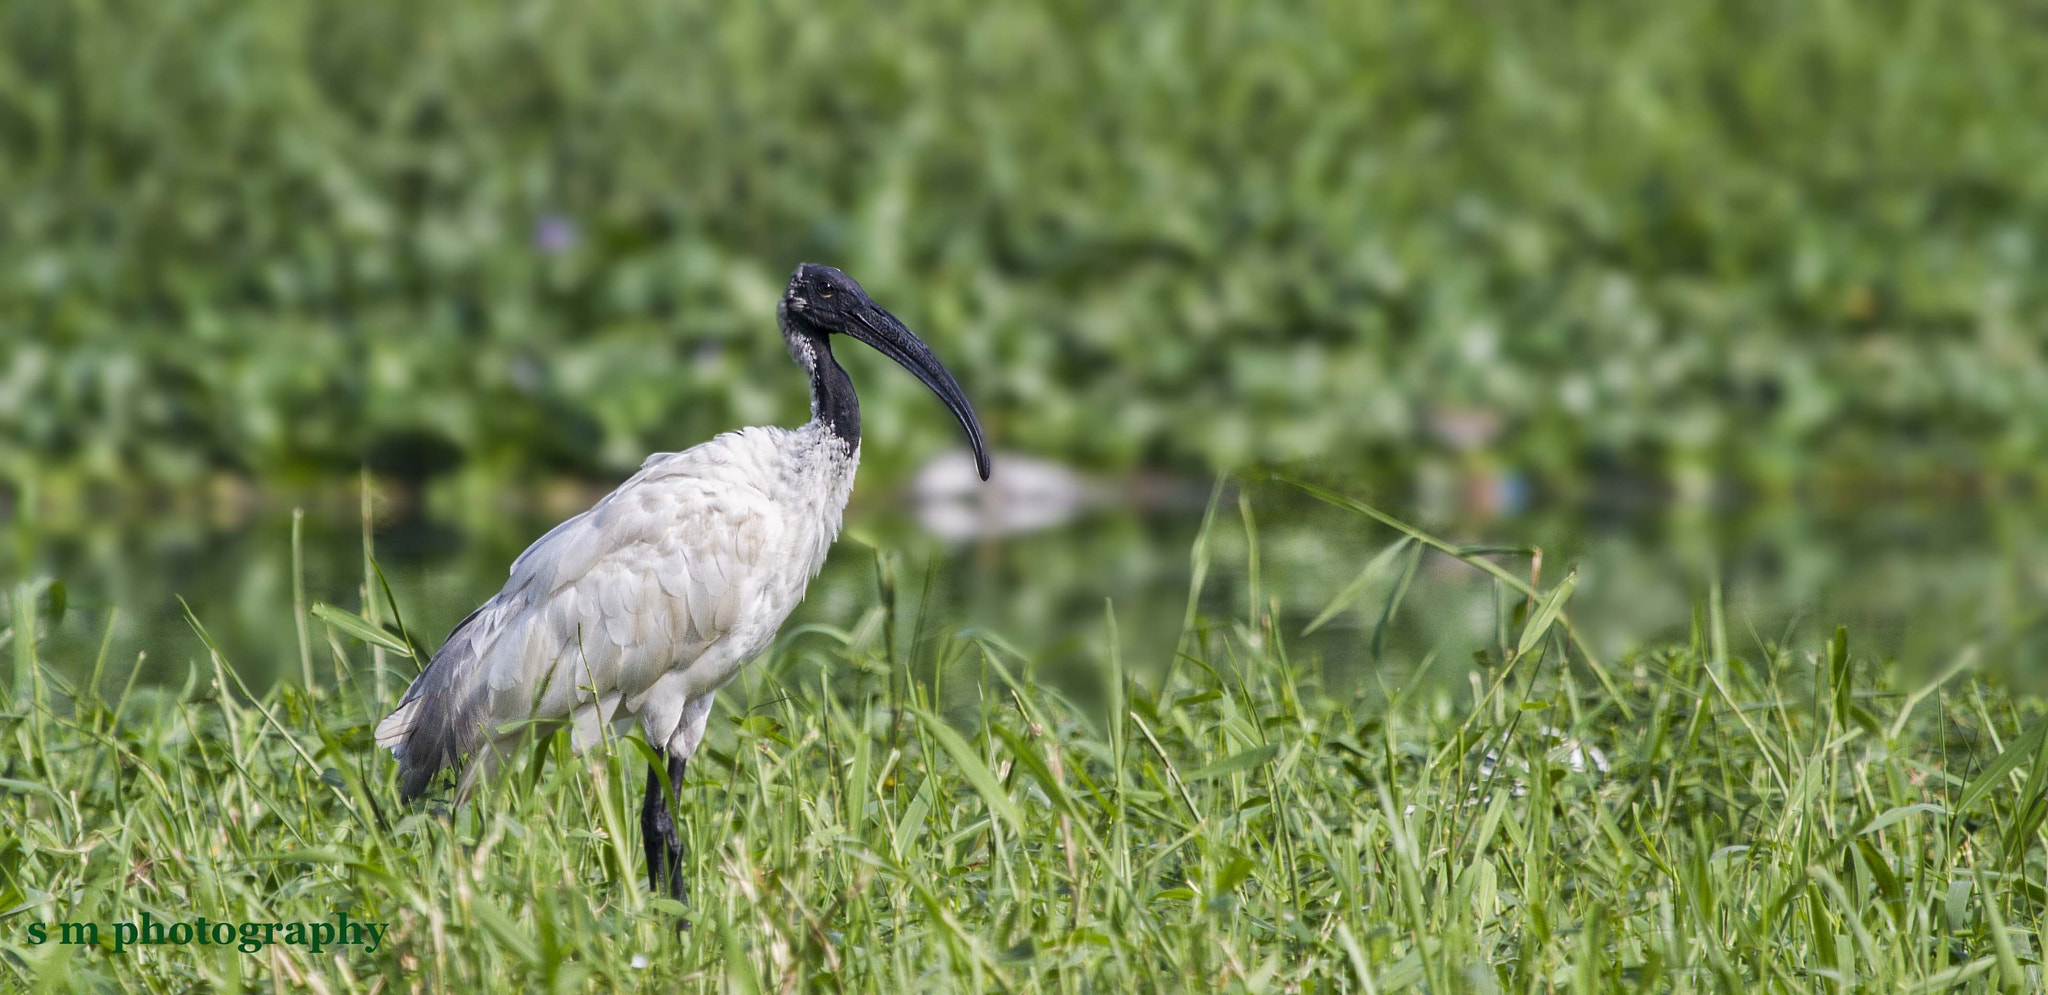 Photograph Black Headed Ibis by Santosh Mulik on 500px